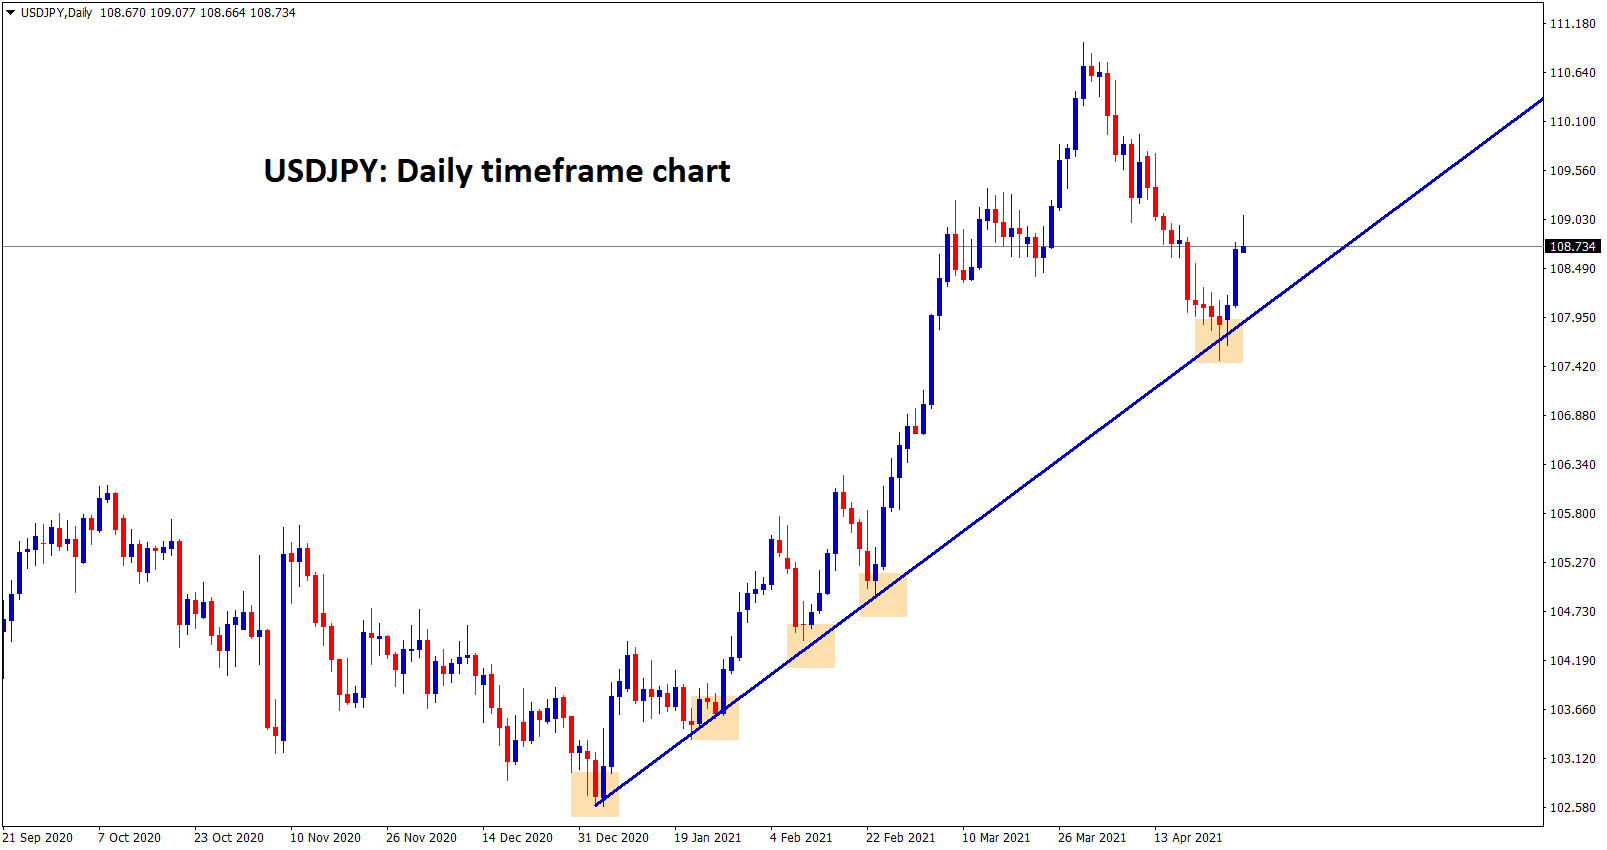 USDJPY bounced back from the higher low